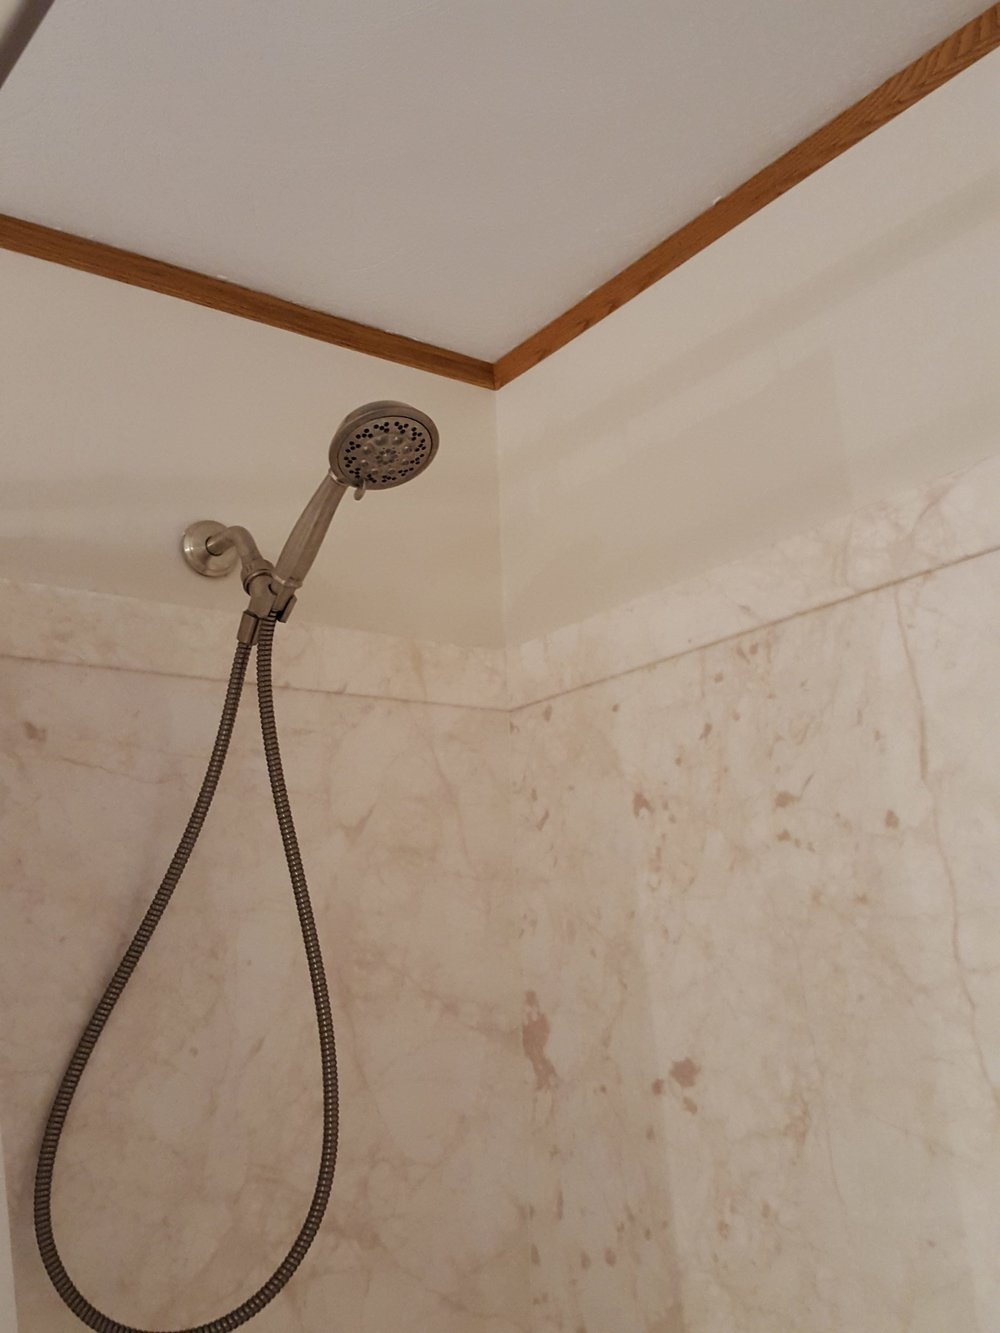 Handicap bathroom remodel - shower head and ceiling.